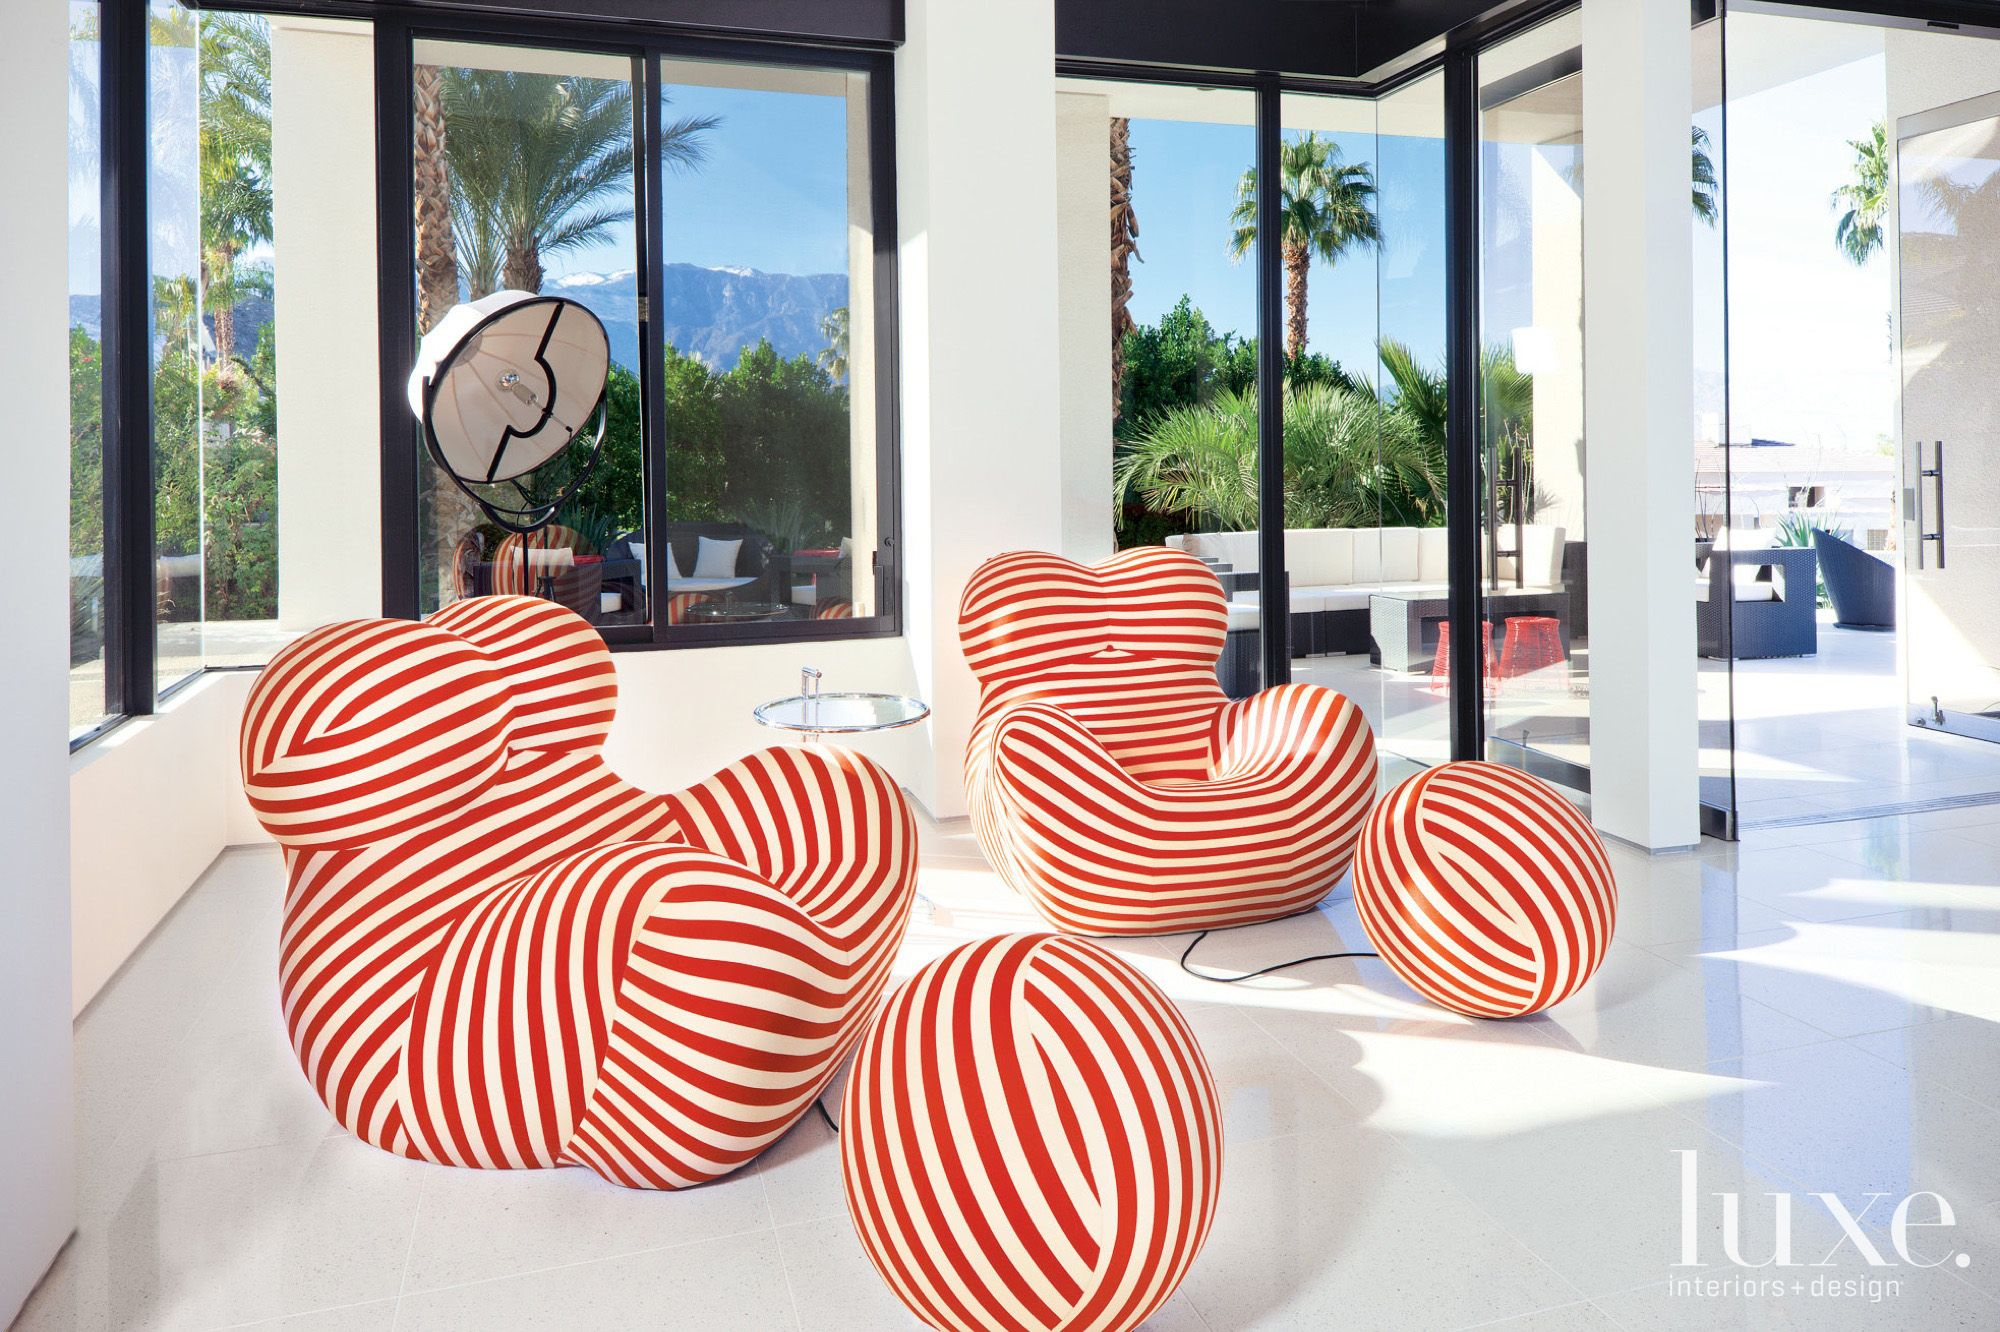 White Modern Sitting Area with Whimsical Red Striped Chairs